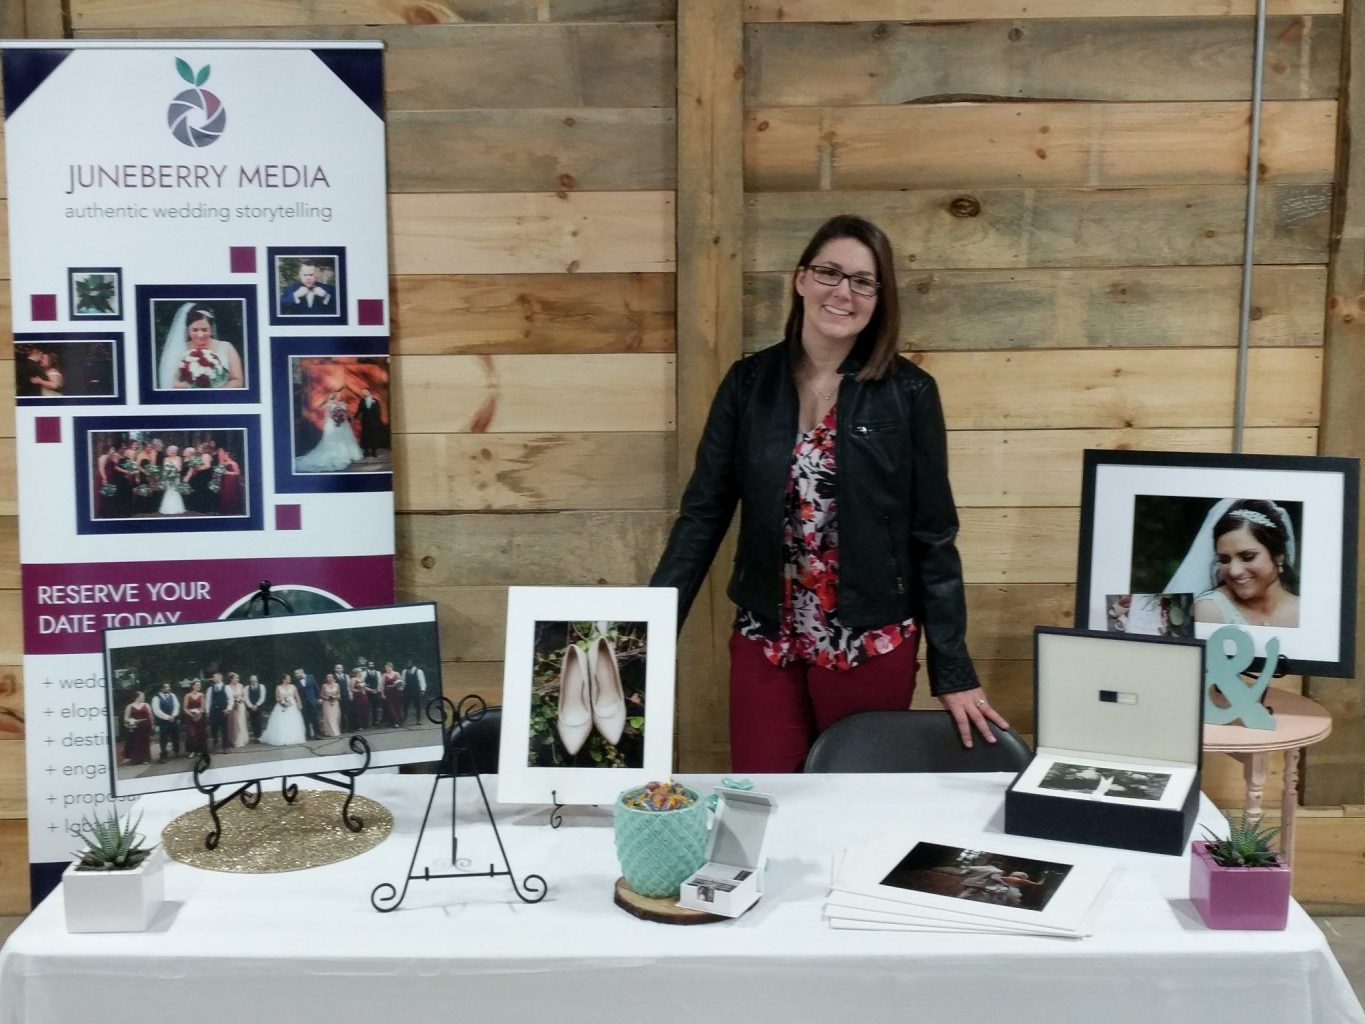 Me standing with my vendor booth at A Little Patch of Heaven bridal show.